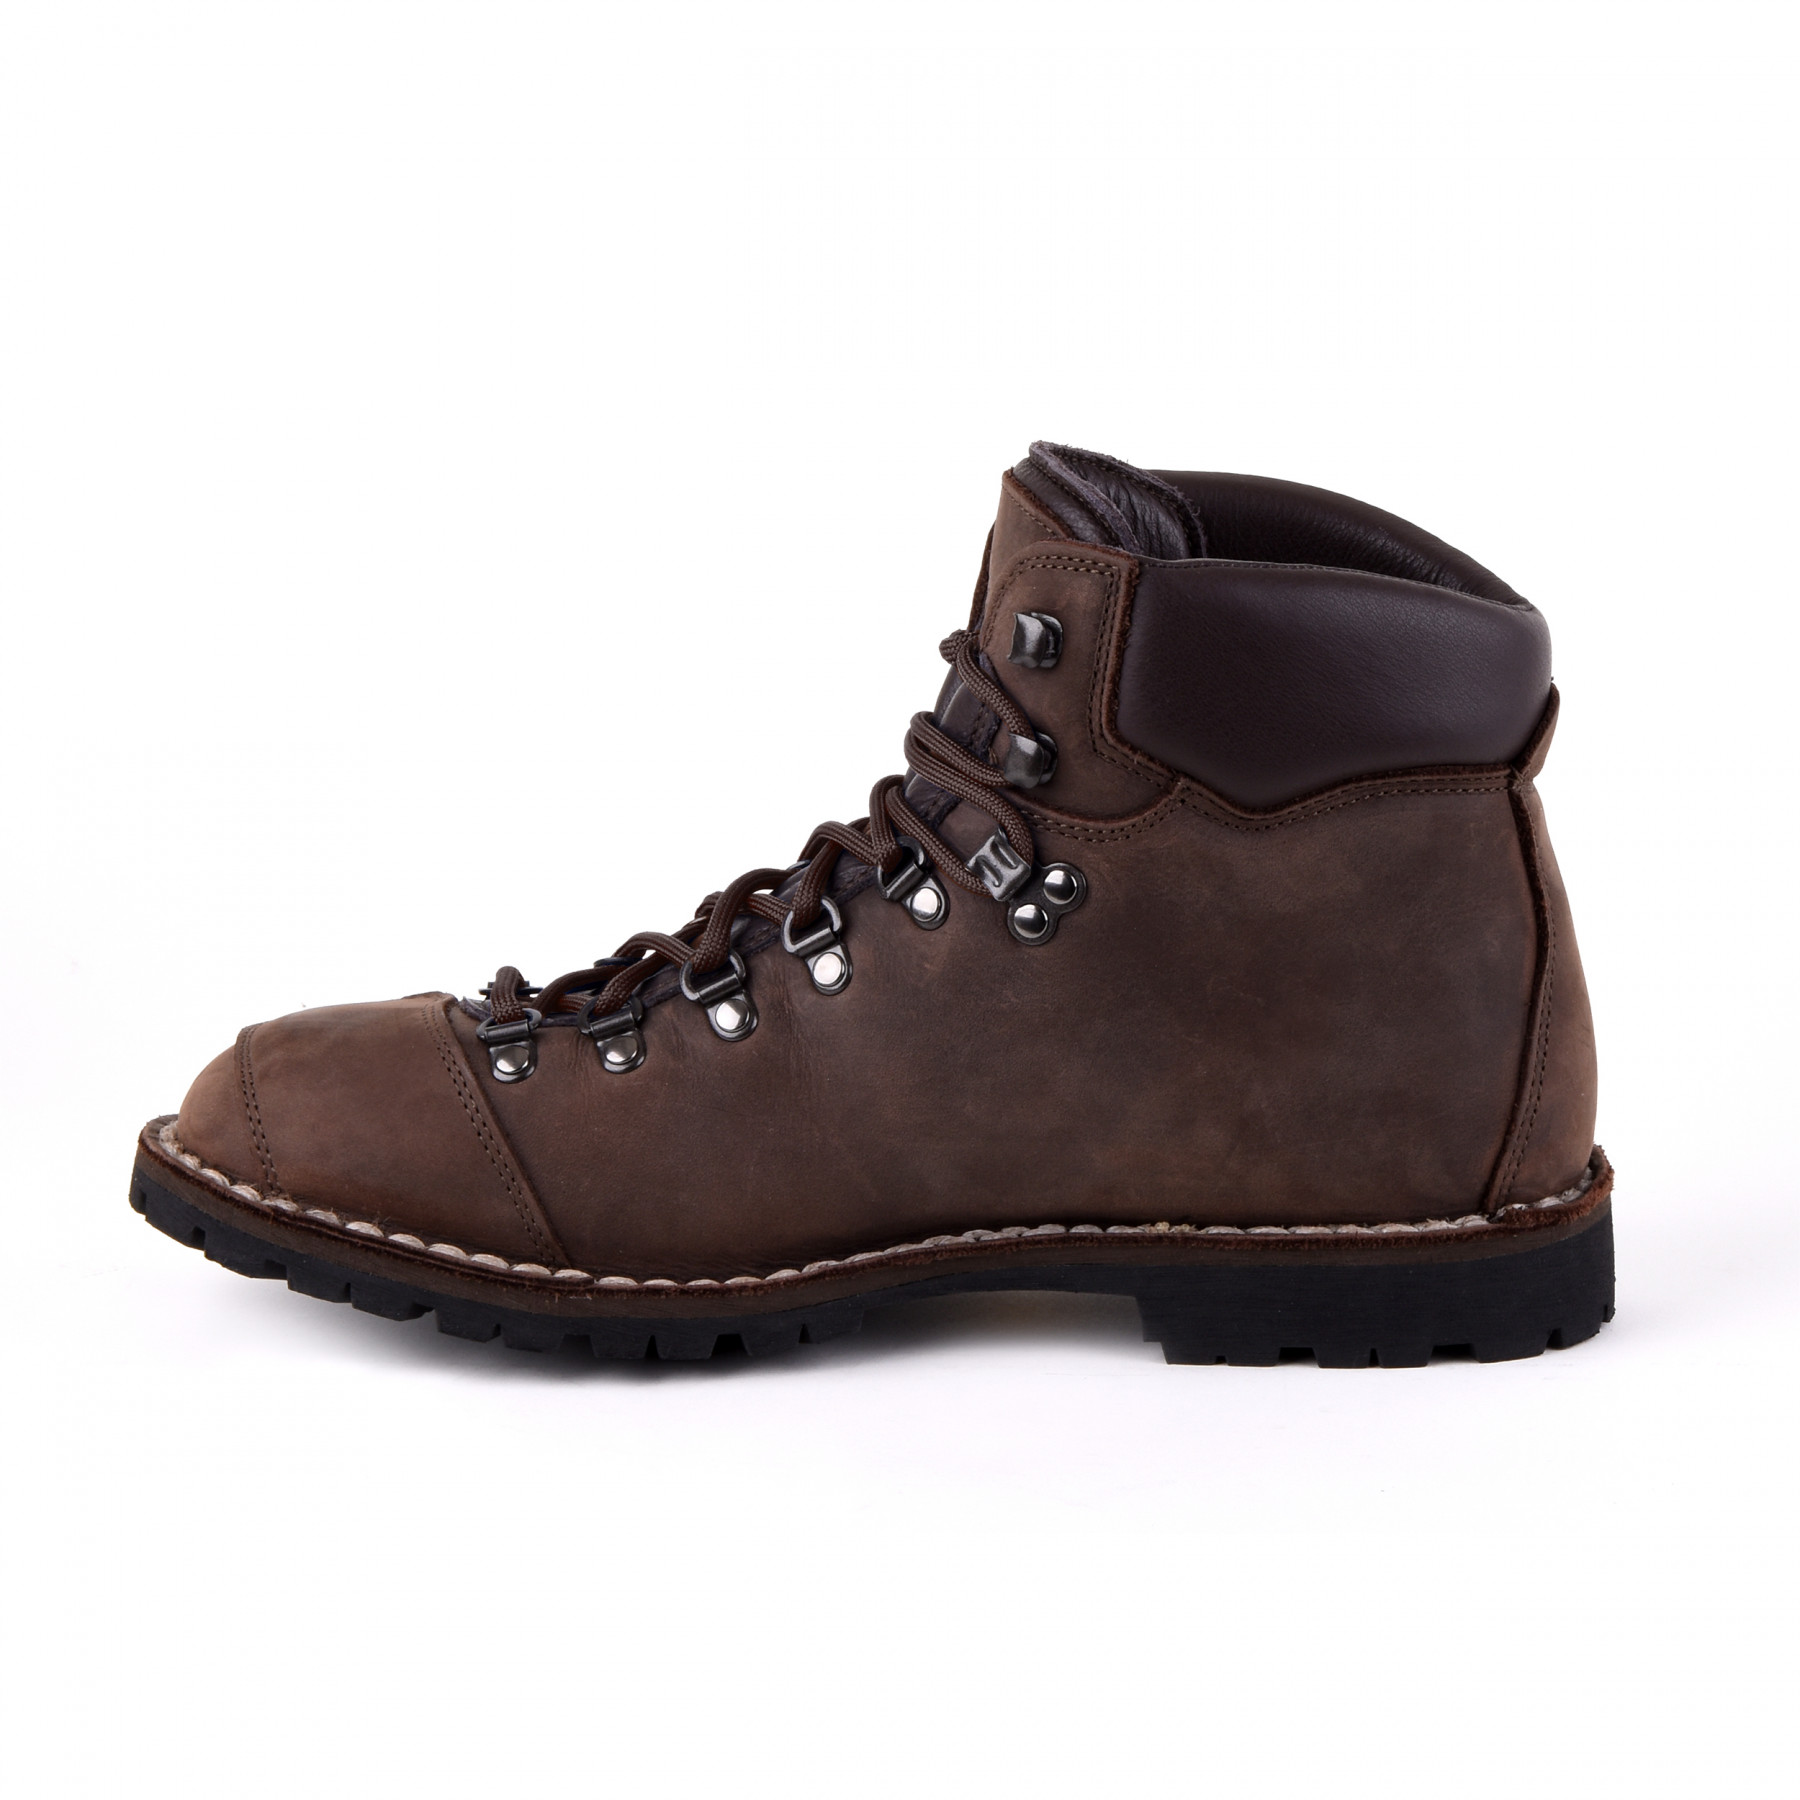 Outdoor boots from Magellan & Mulloy: 100% waterproof and